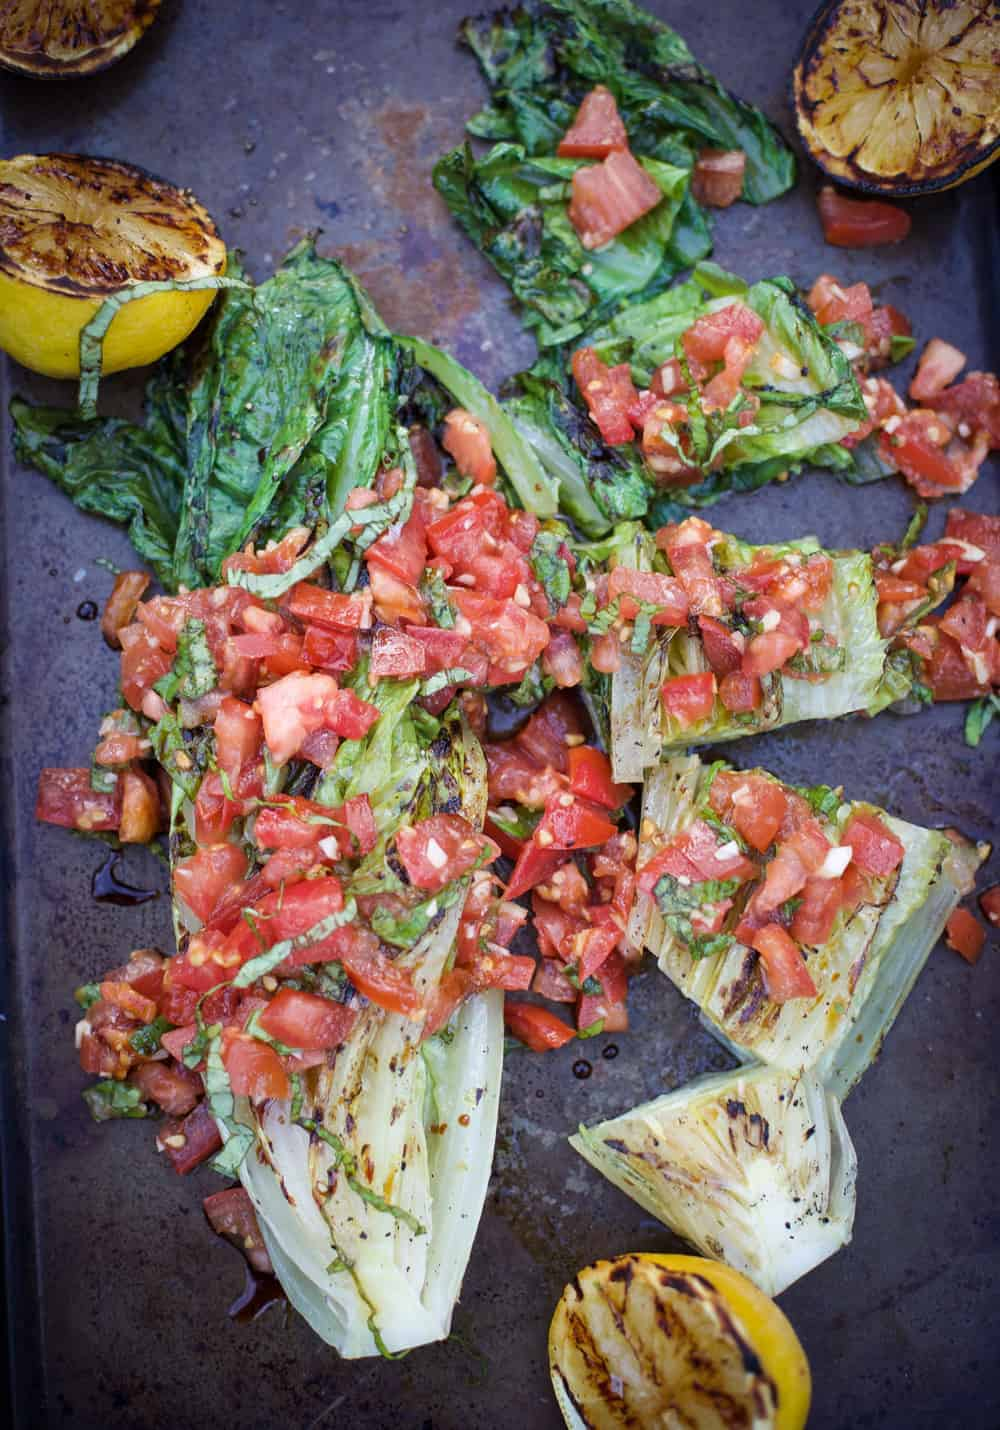 Grilled Romaine with Tomatoes, Basil, and Balsamic, garnished with grilled lemons